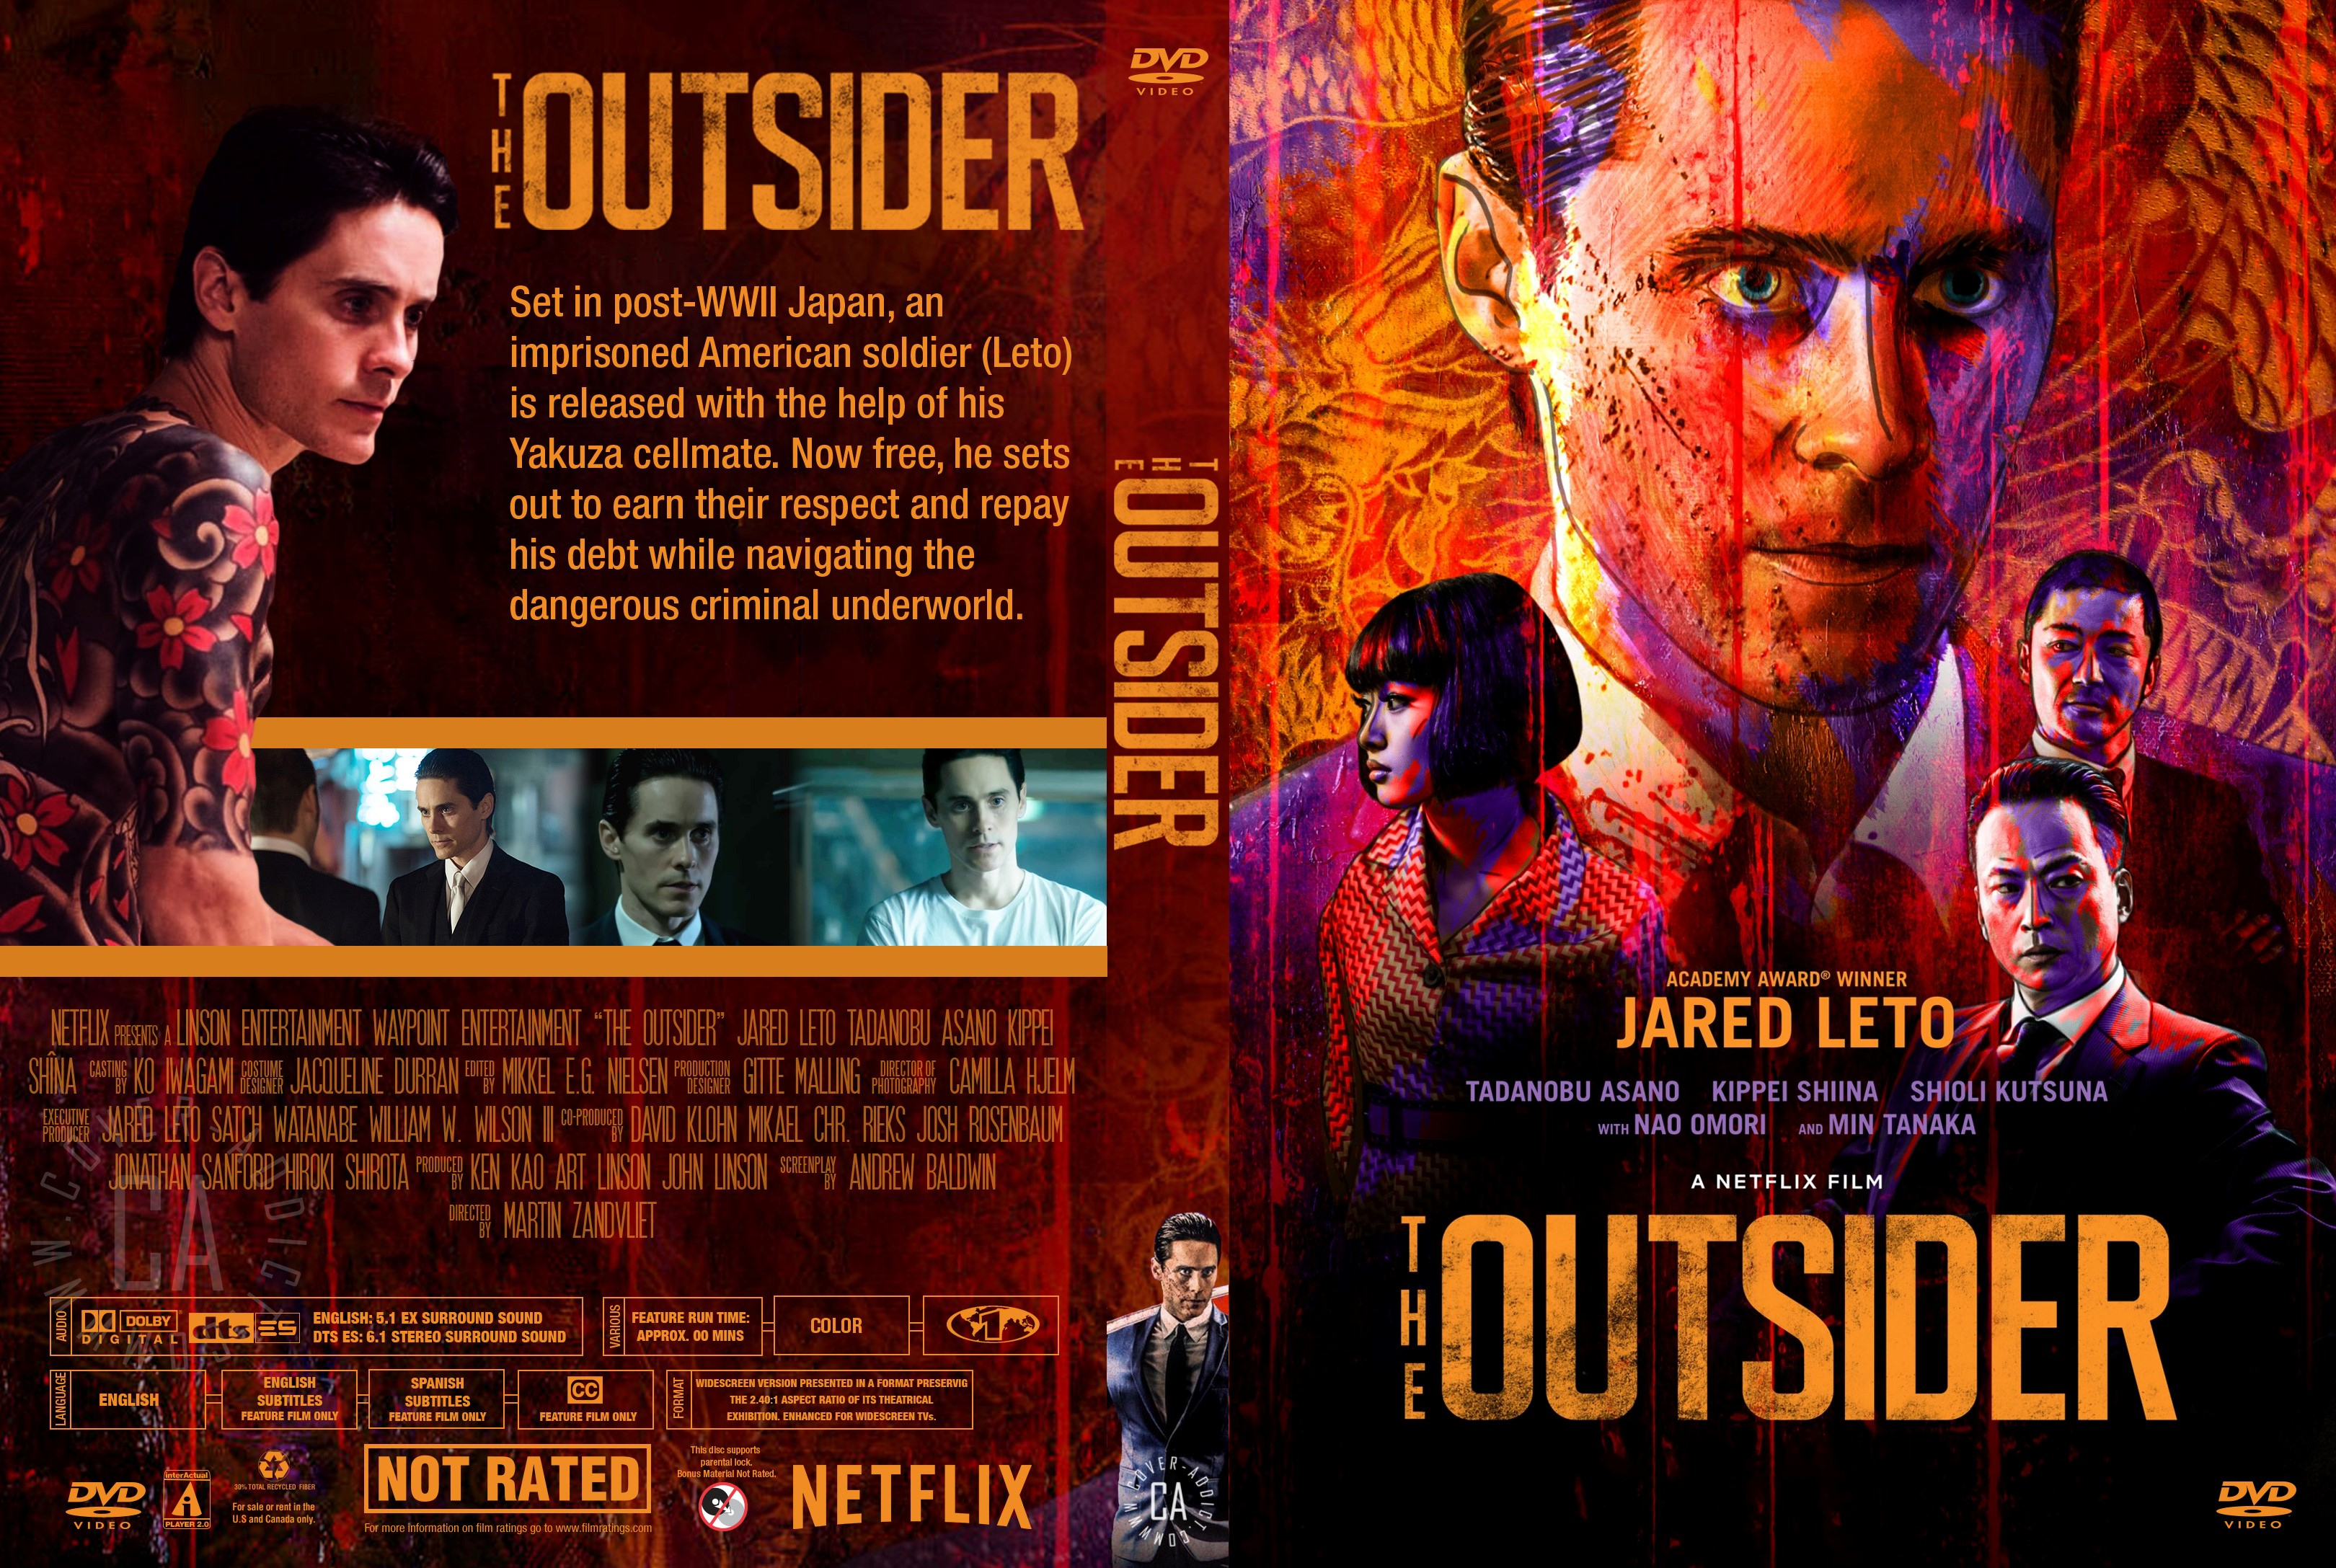 The Outsider Dvd Cover Cover Addict Free Dvd Bluray